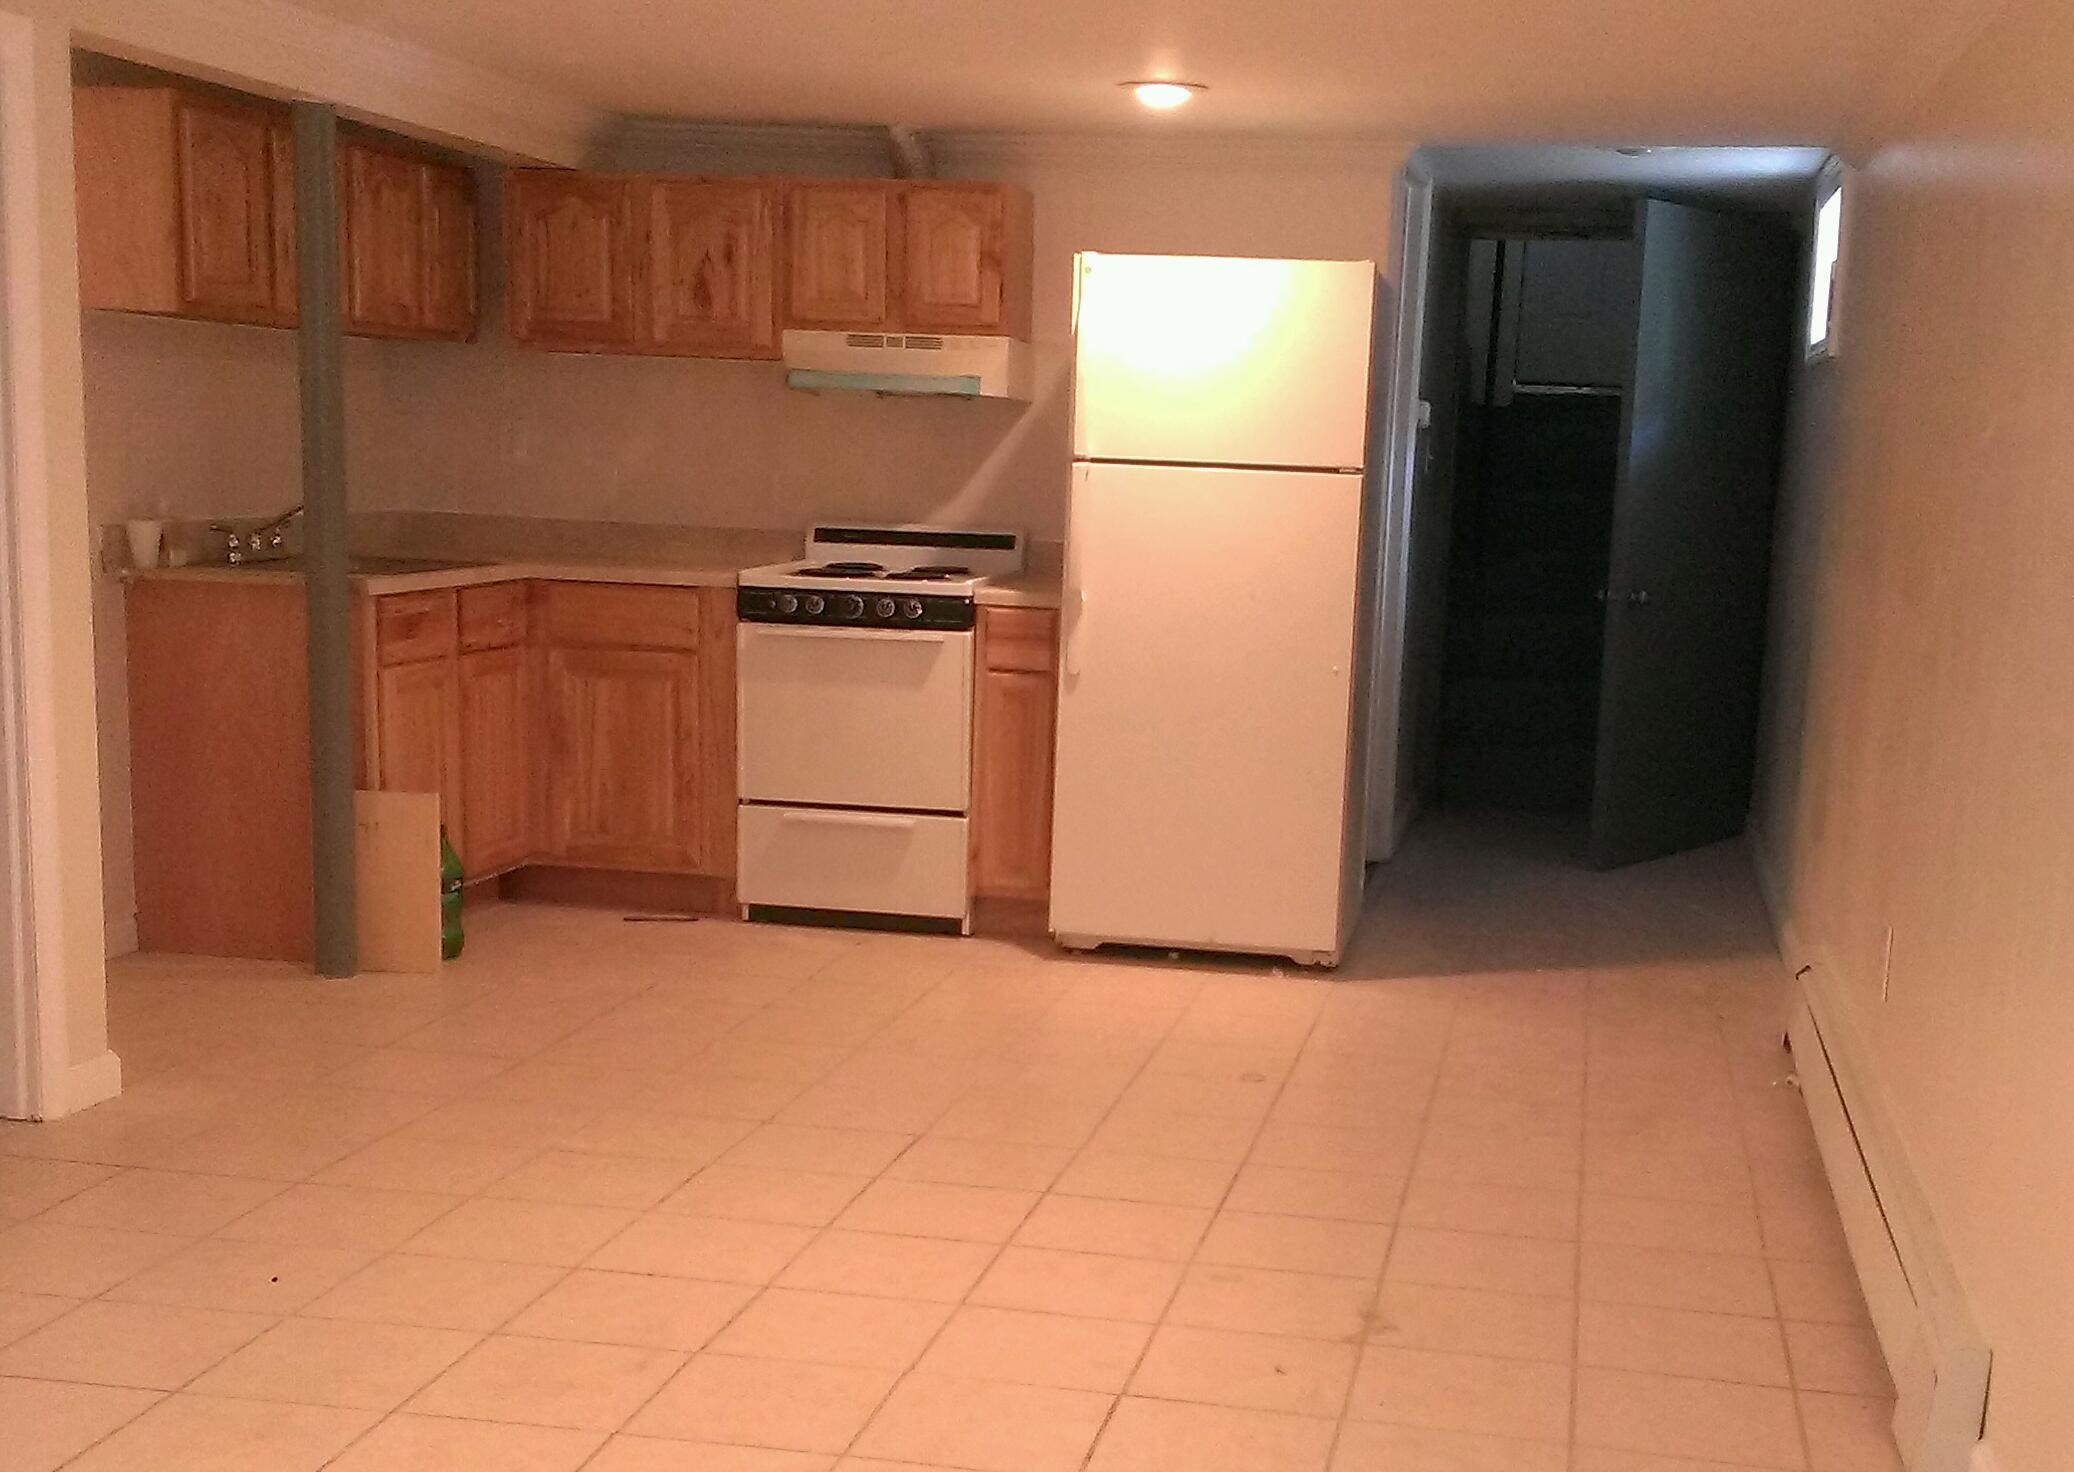 2 Bedroom Furnished Bat Apartment With Separate Entrance For Rent